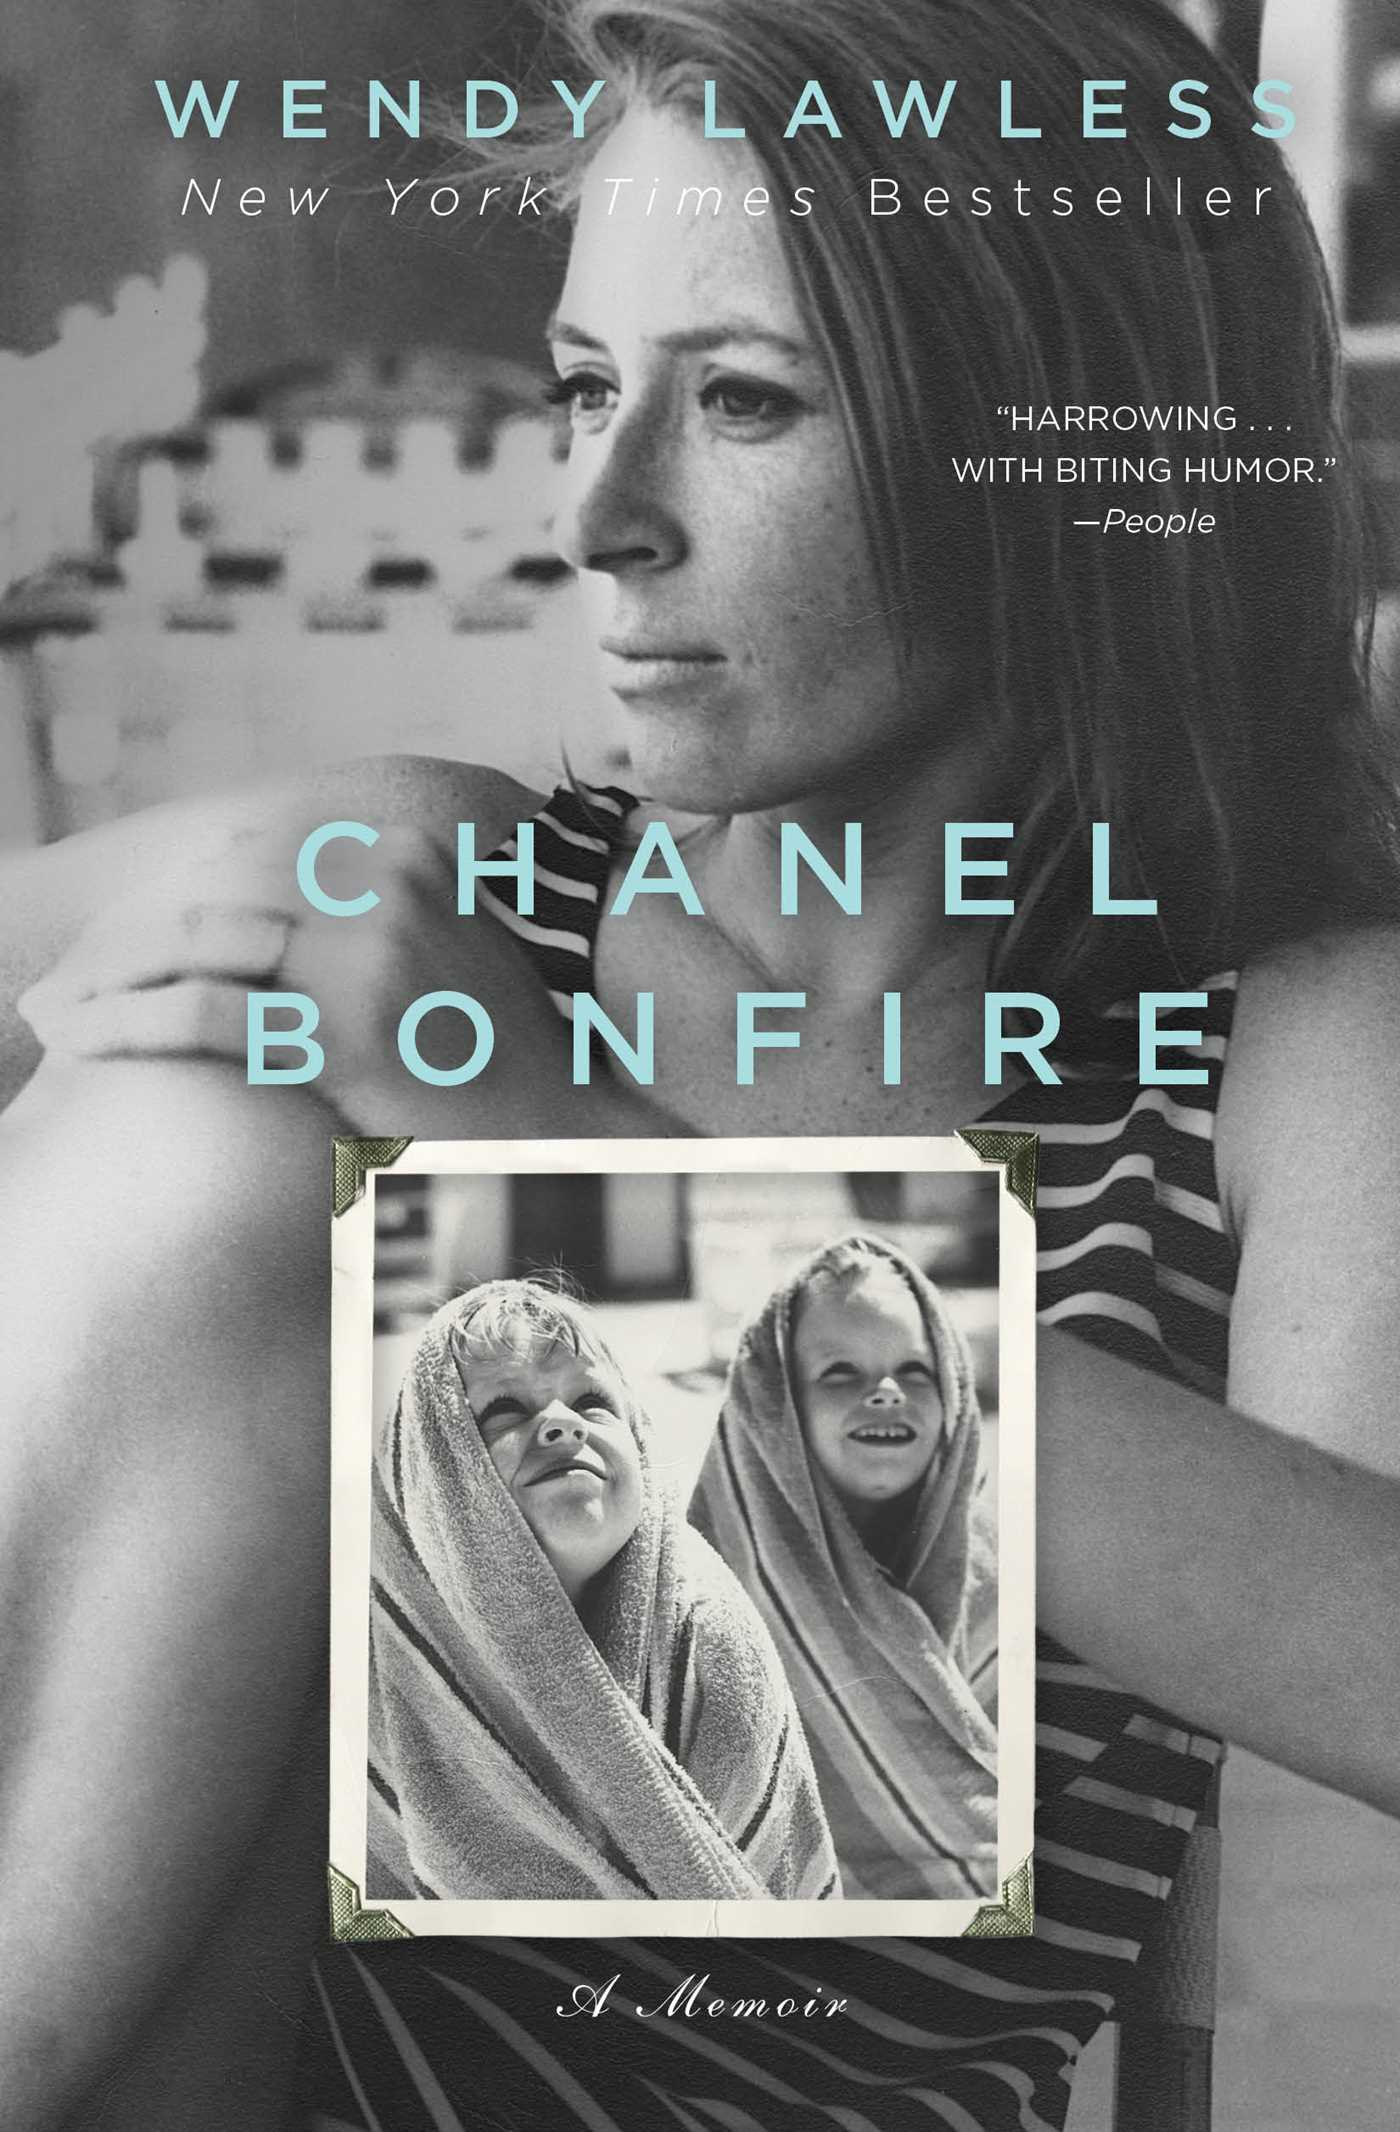 Chanel-bonfire-9781476745480_hr